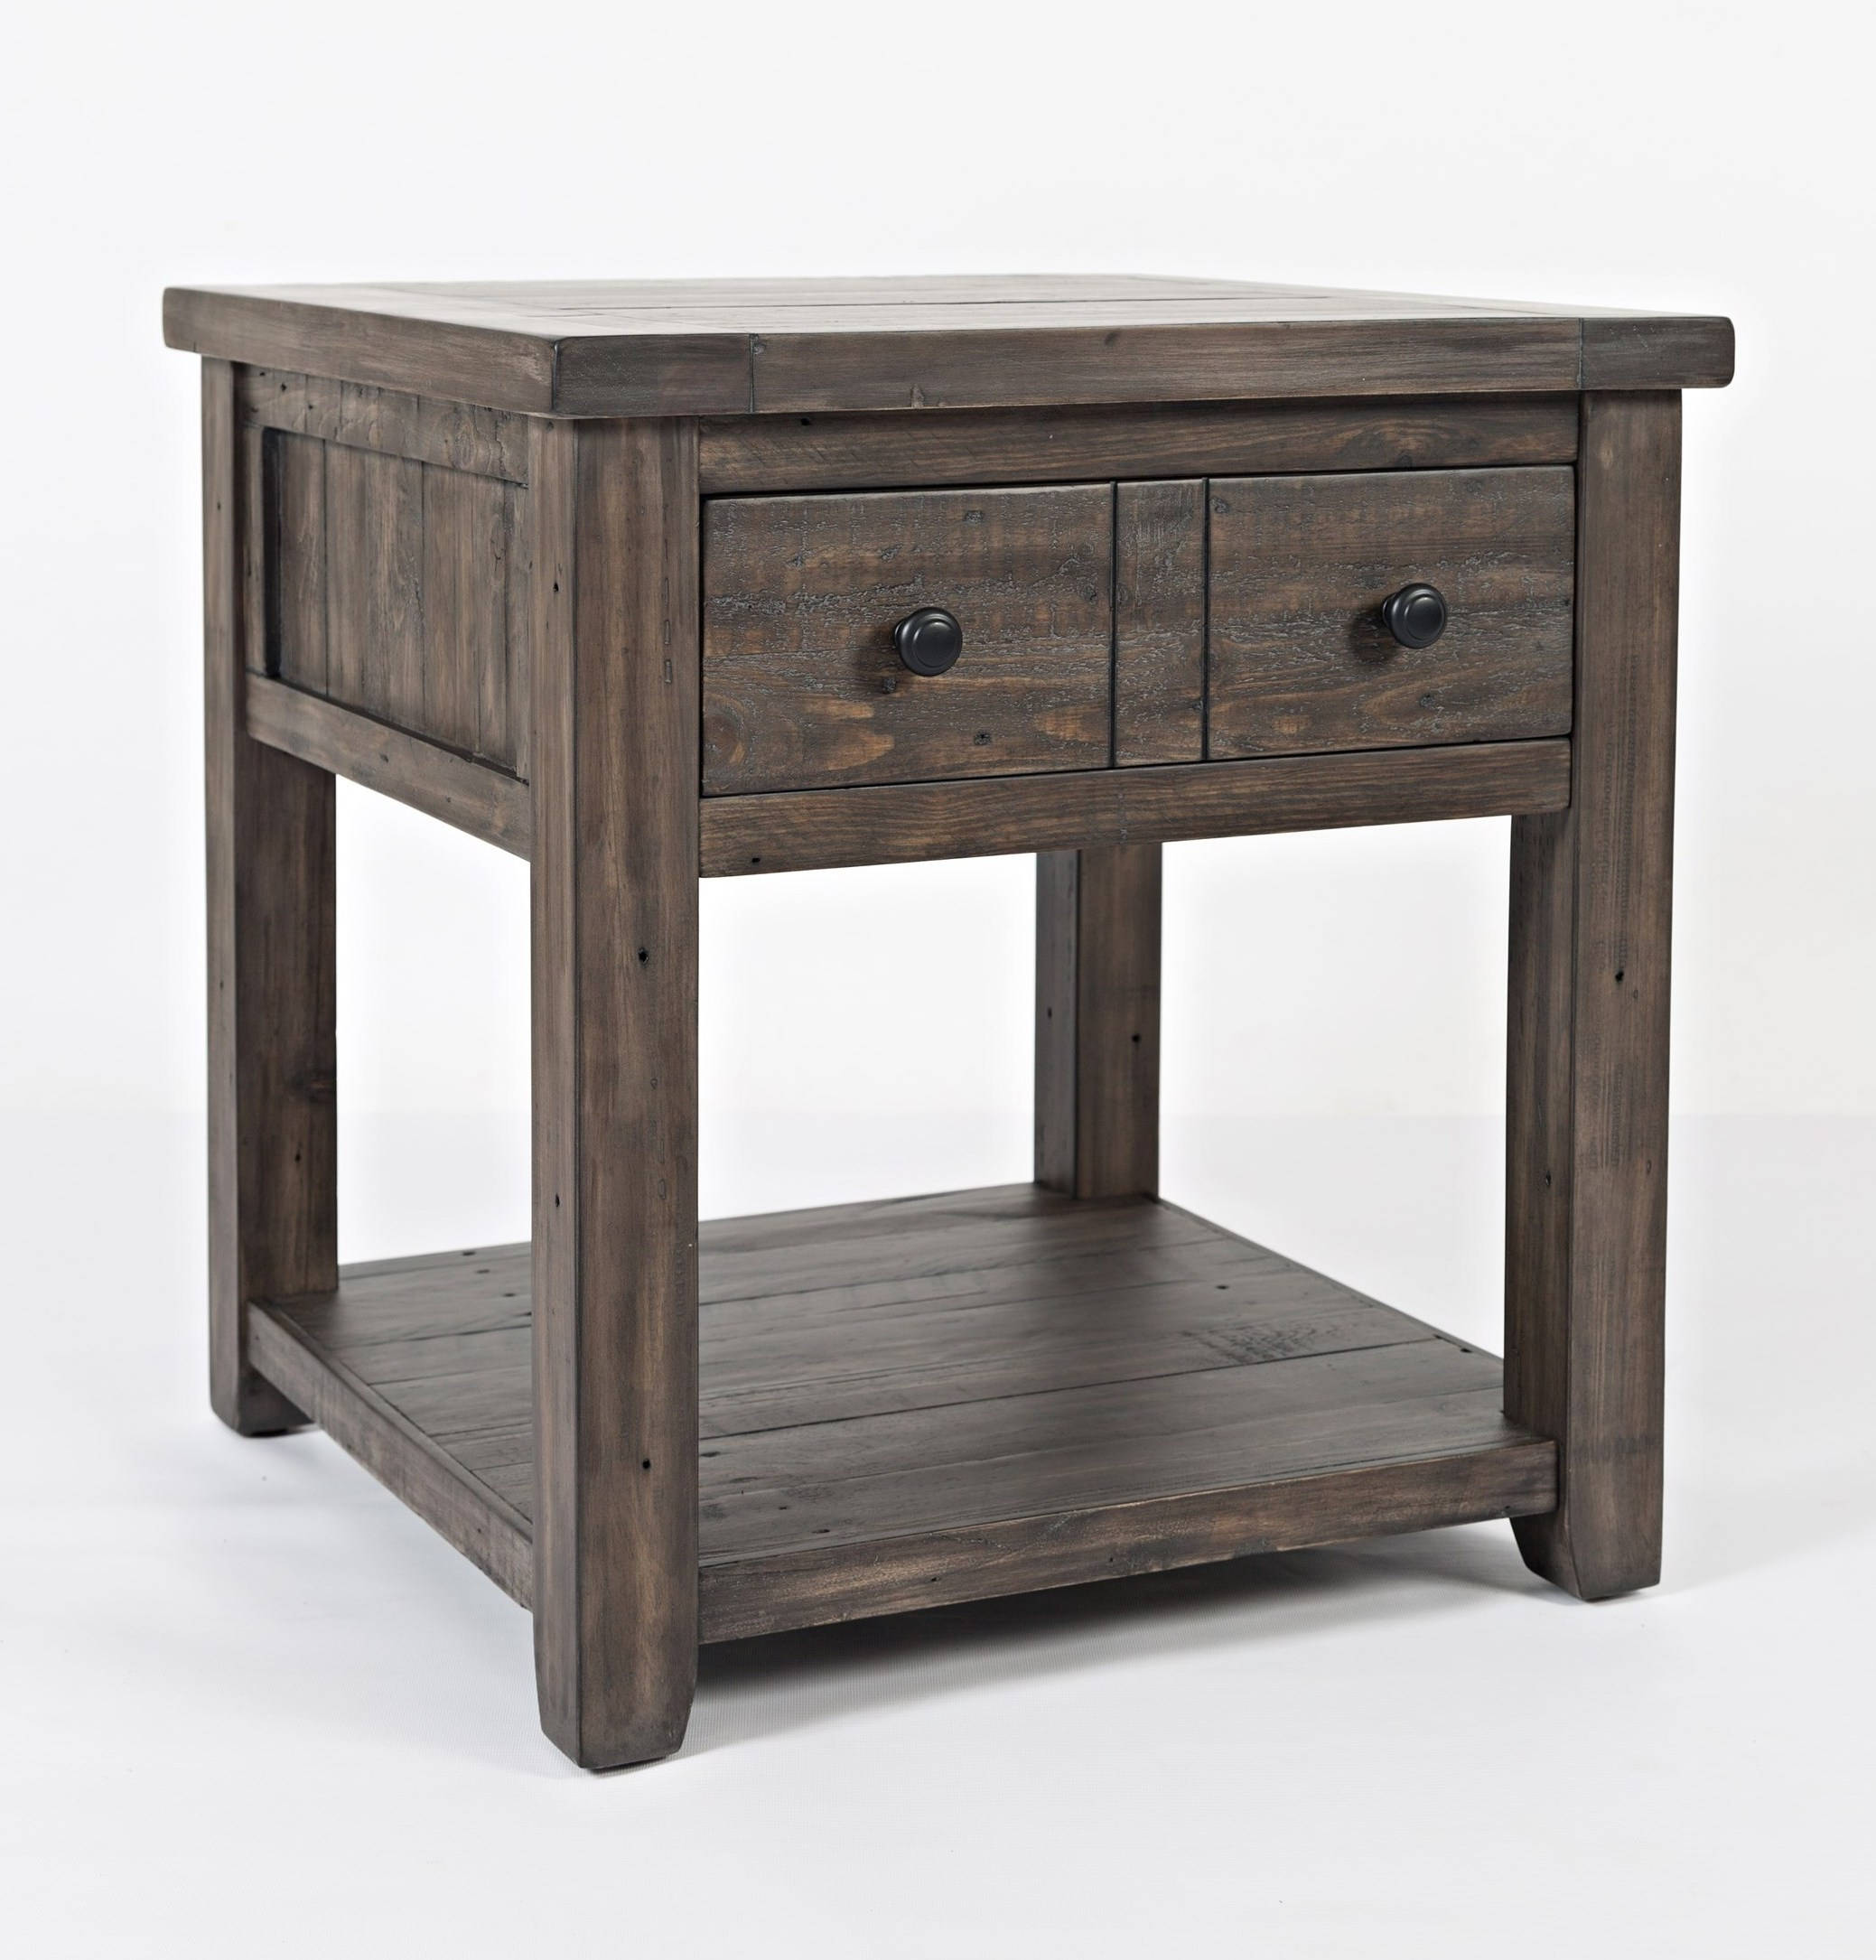 jofran furniture madison county barnwood end table the classy home jfn coffee tables click enlarge glass dining with bench rustic industrial bedside thomasville cincinnati ana